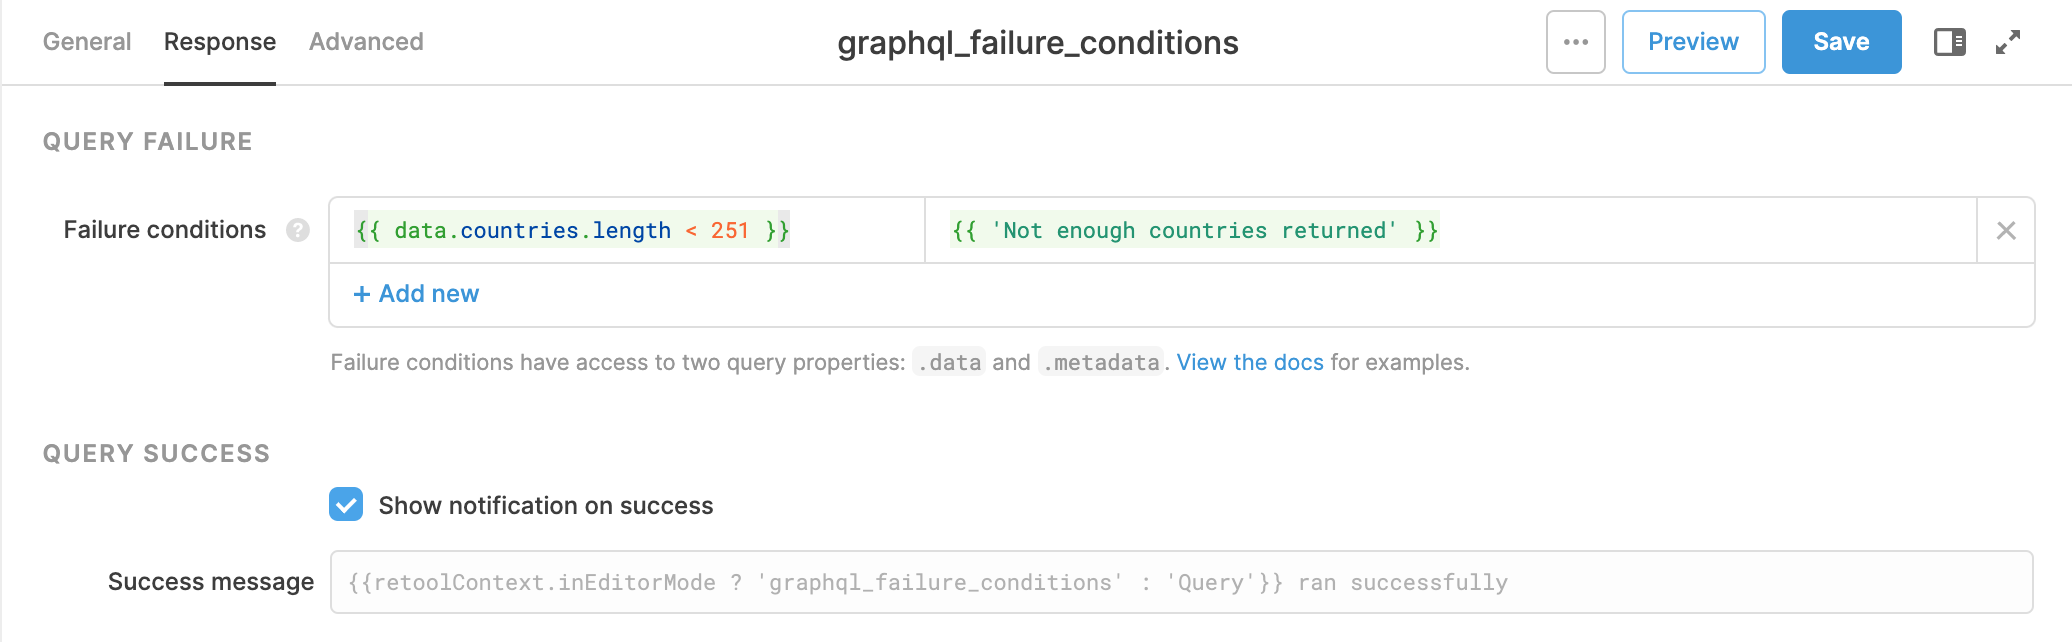 Example: This query will fail when the number of countries returned is fewer than 251.